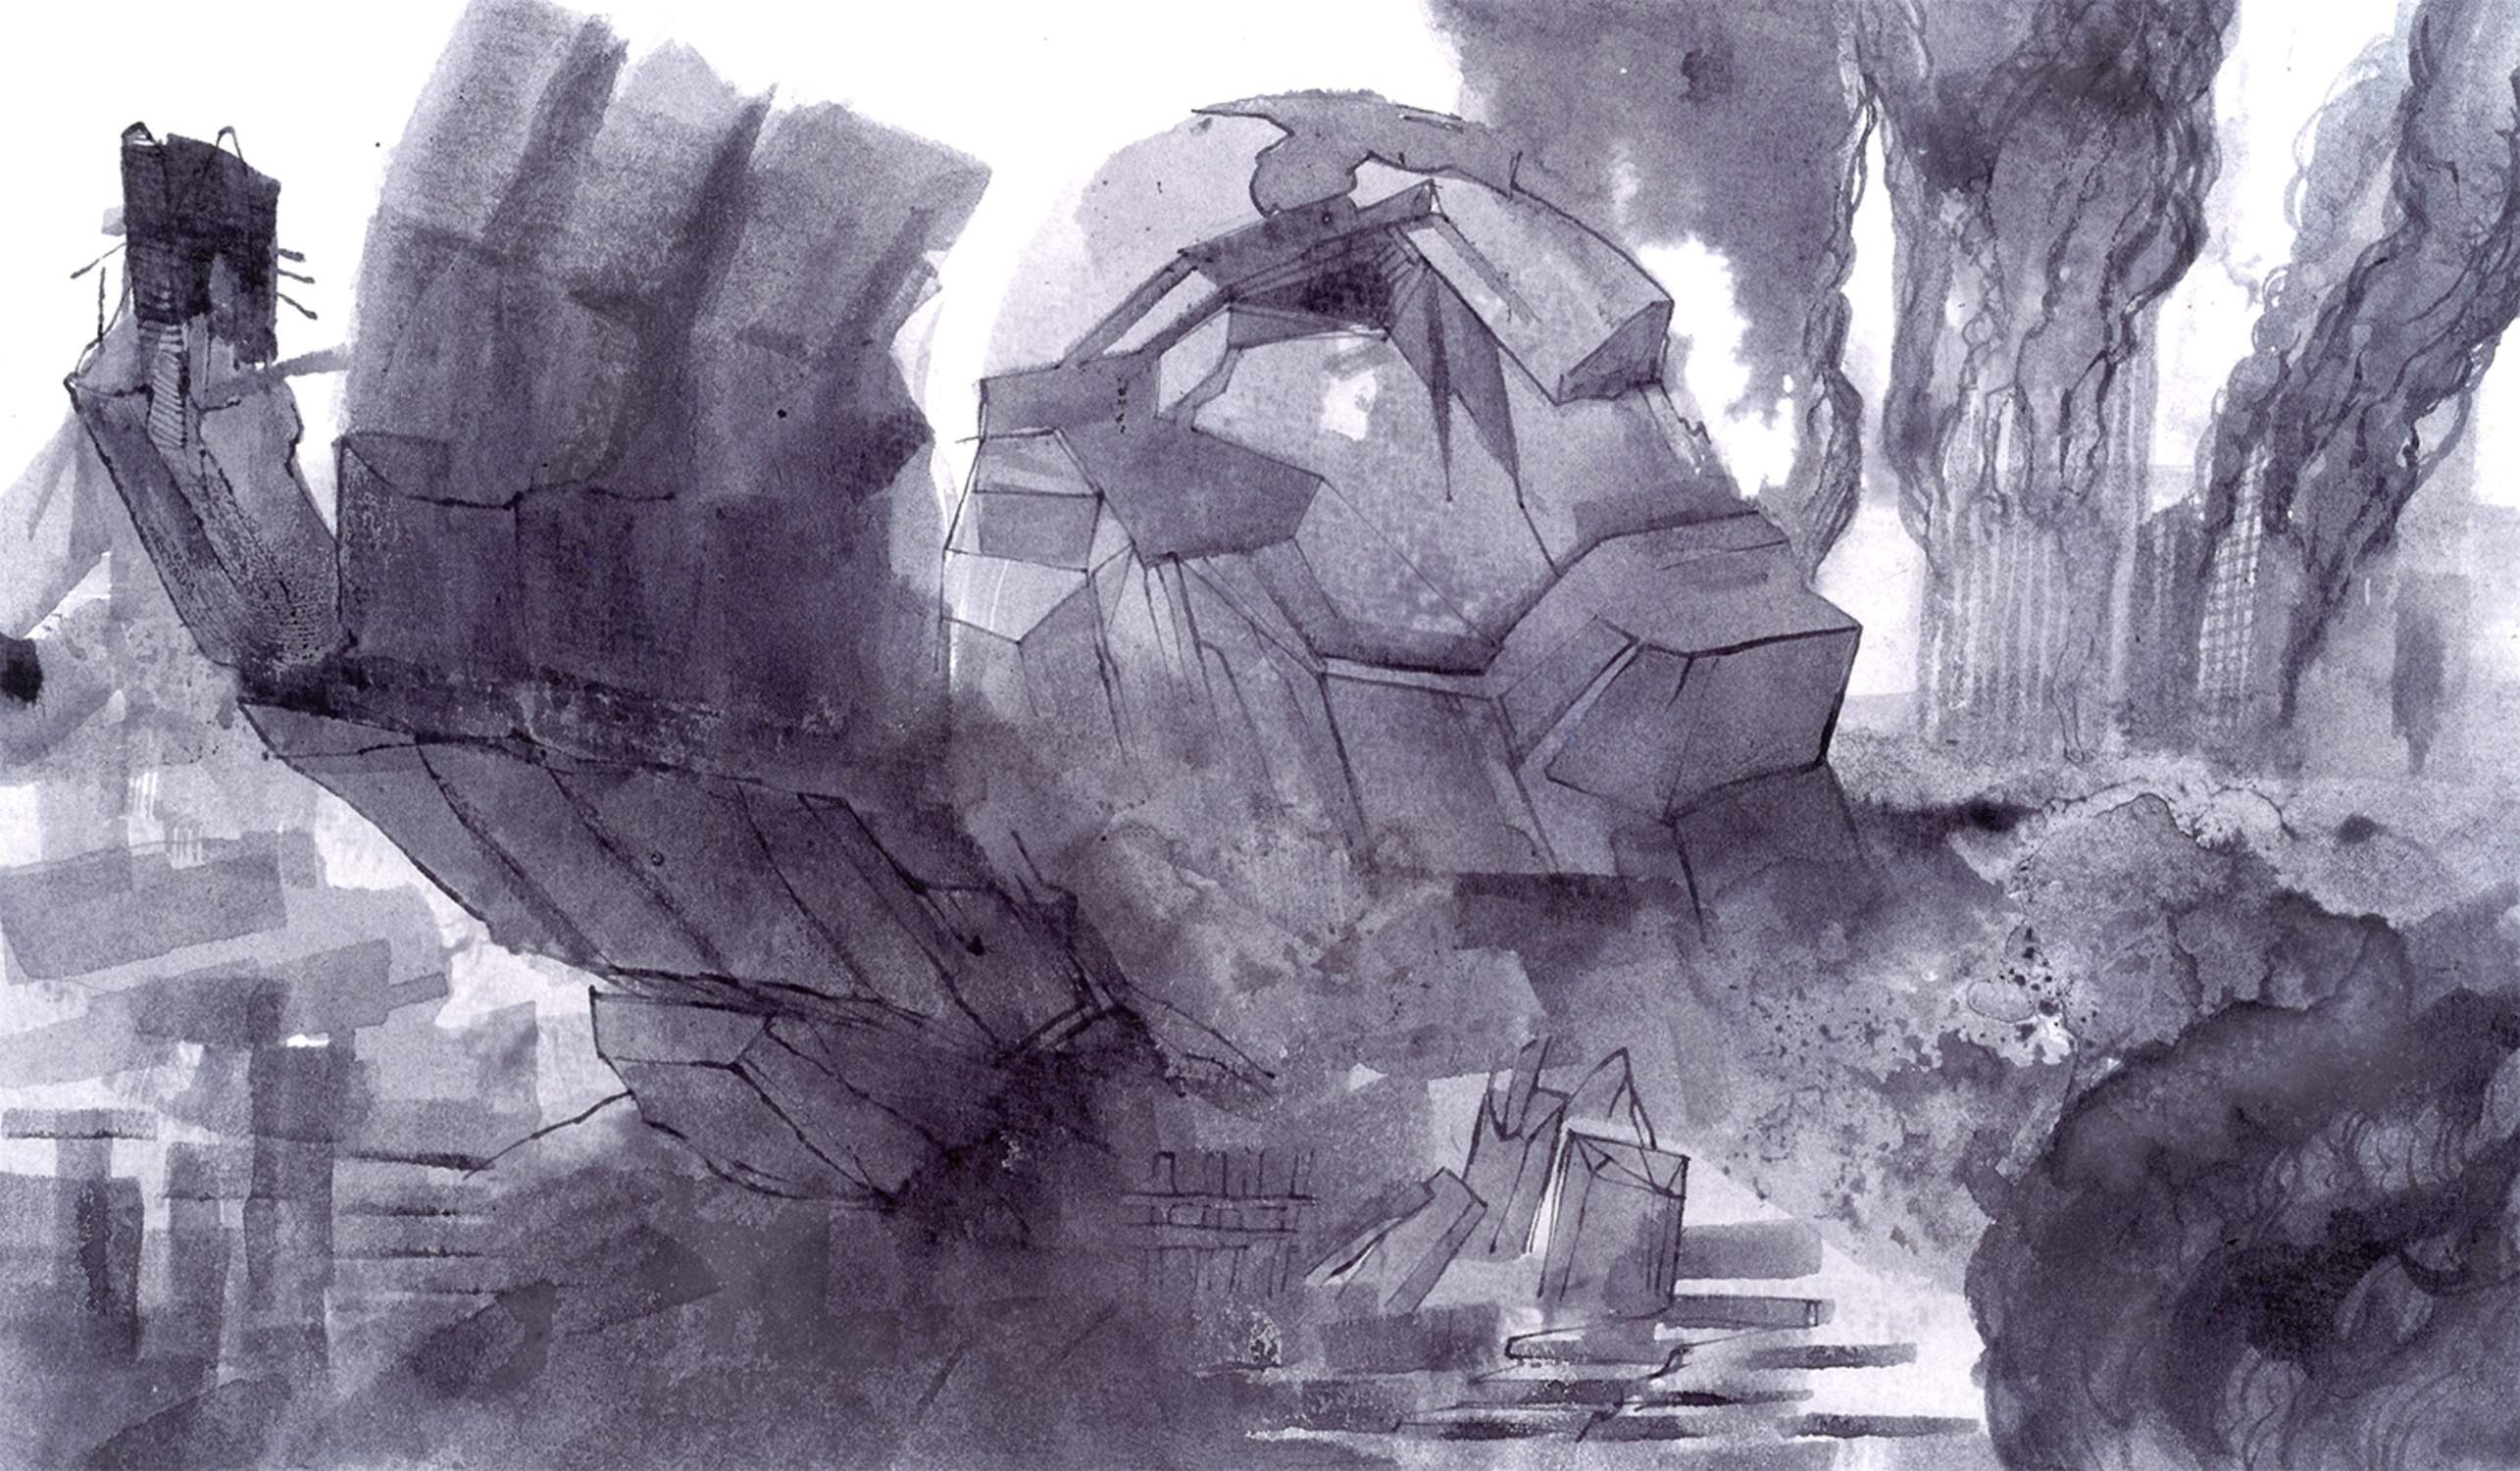 Stone Sentinel Artwork by Ulysses Penfield